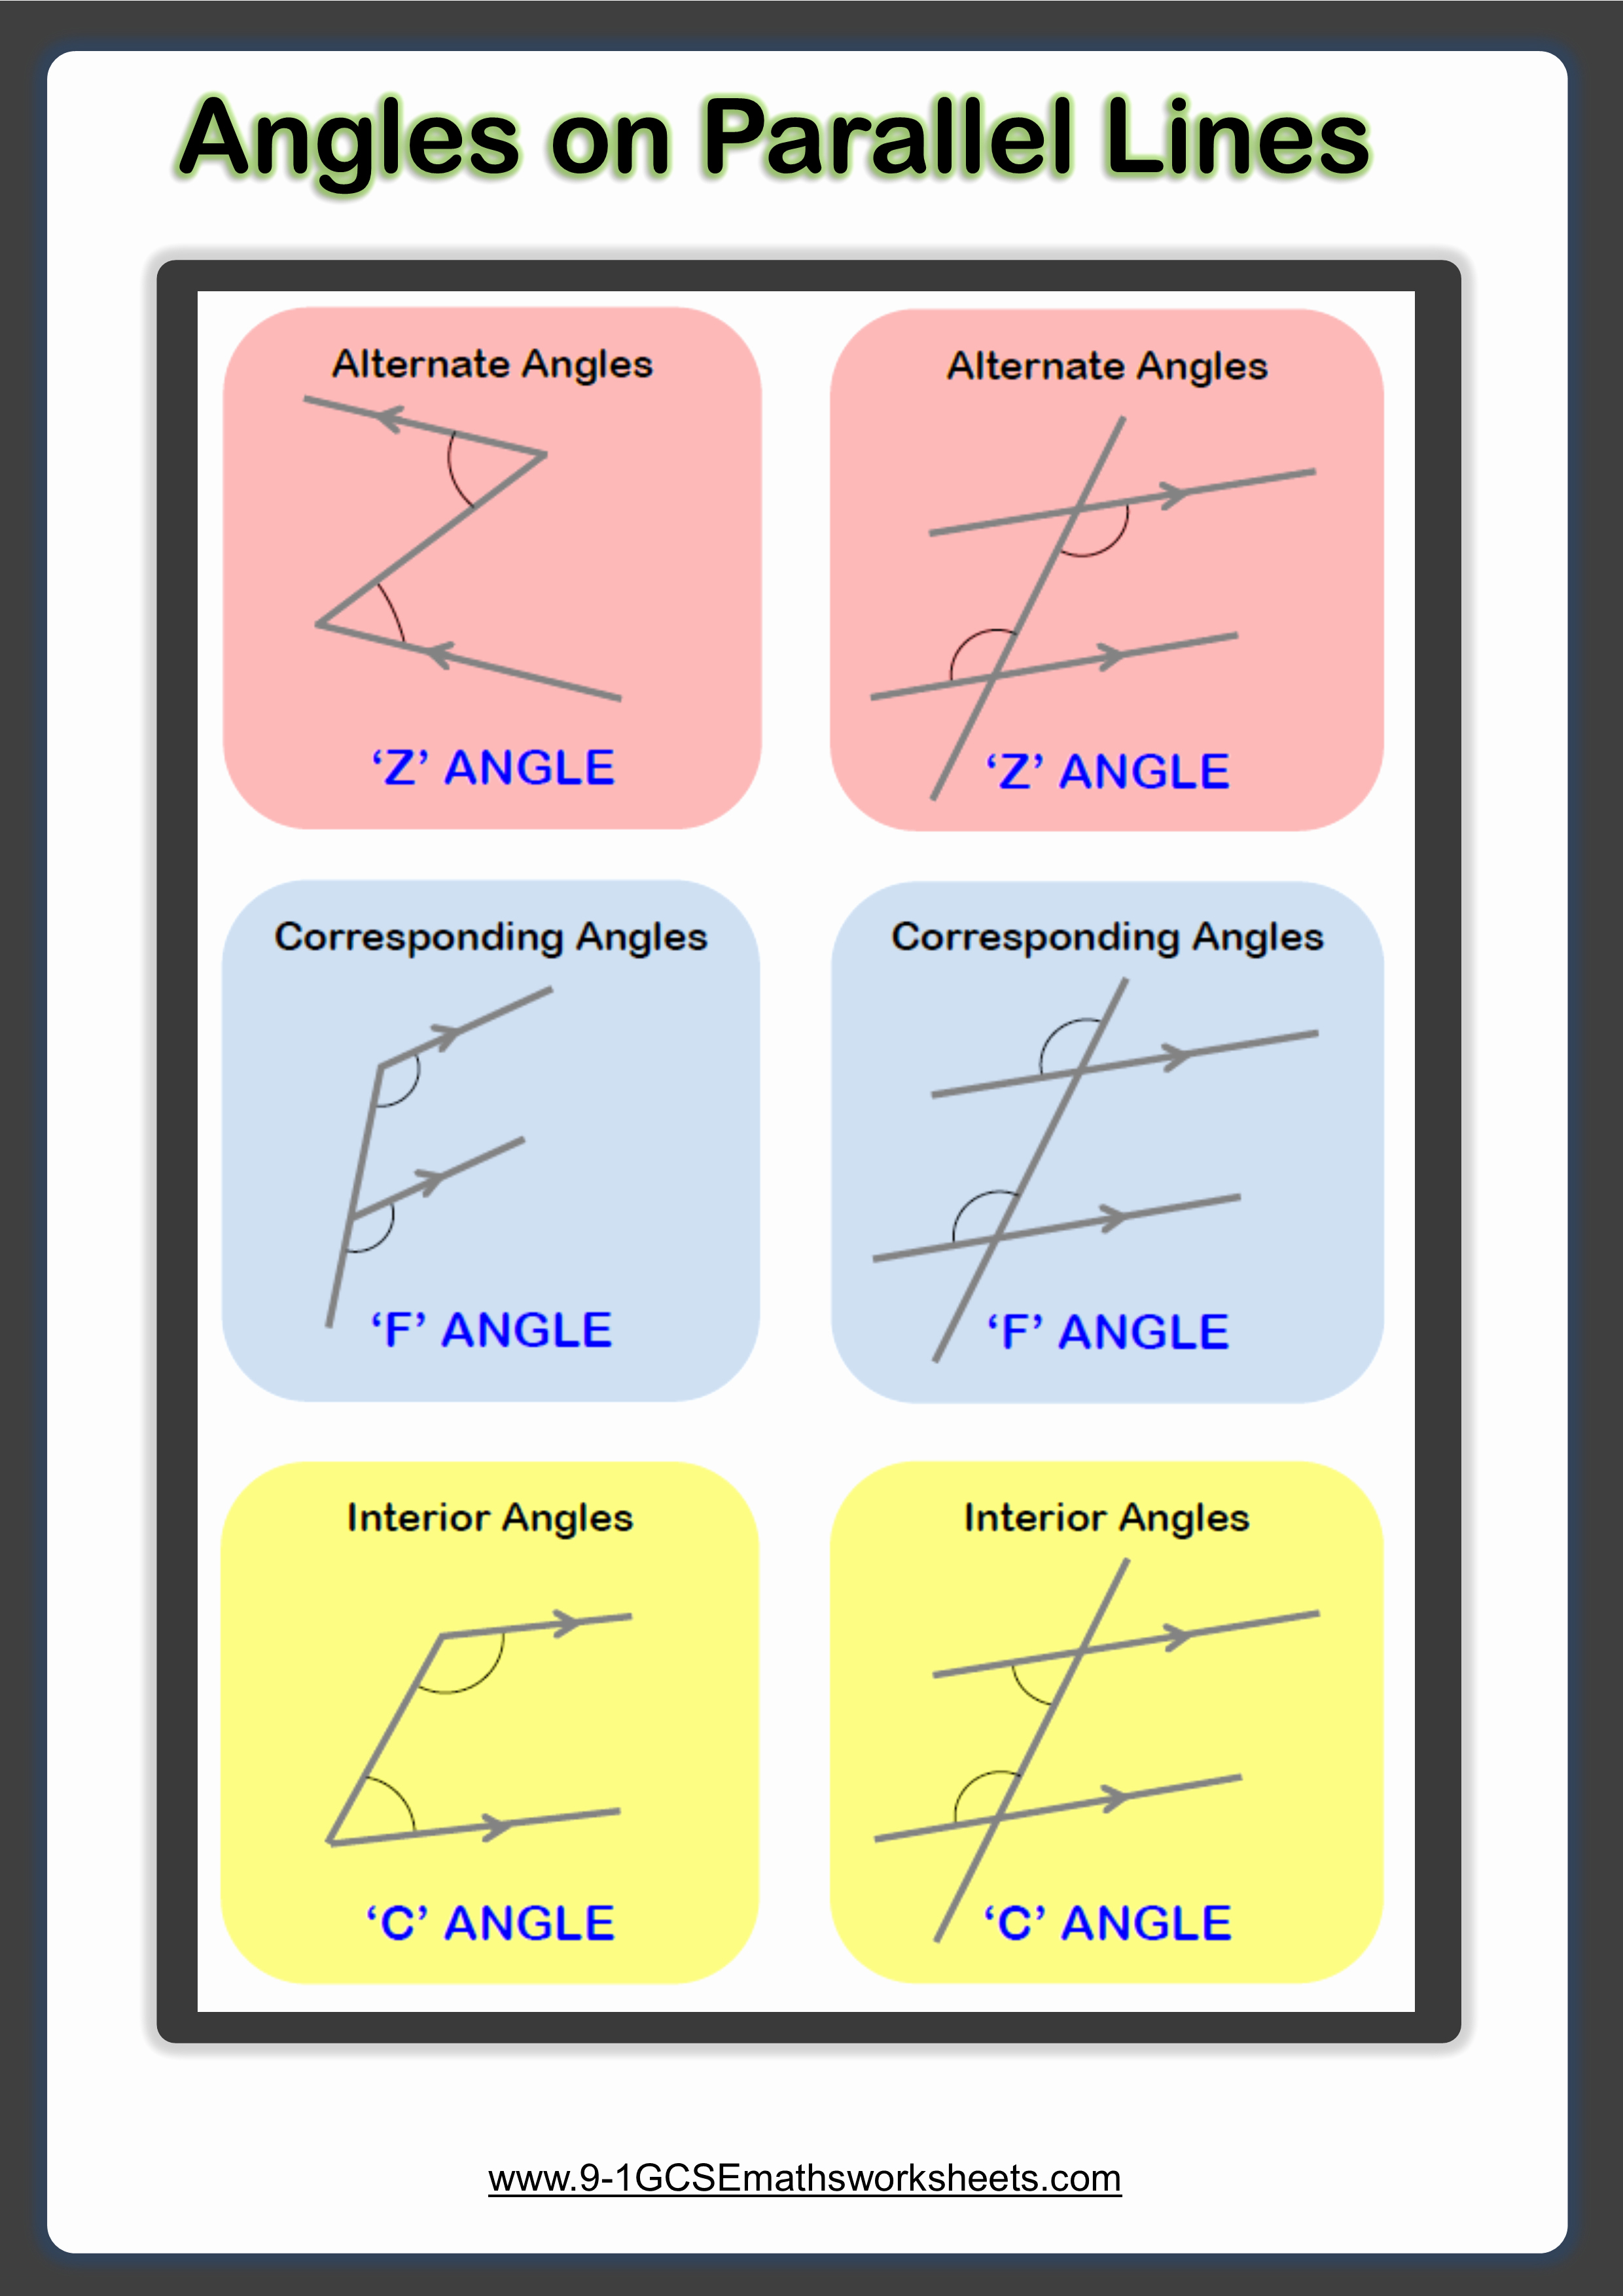 Angles and Parallel Lines Worksheet New Angles On Parallel Lines Worksheets